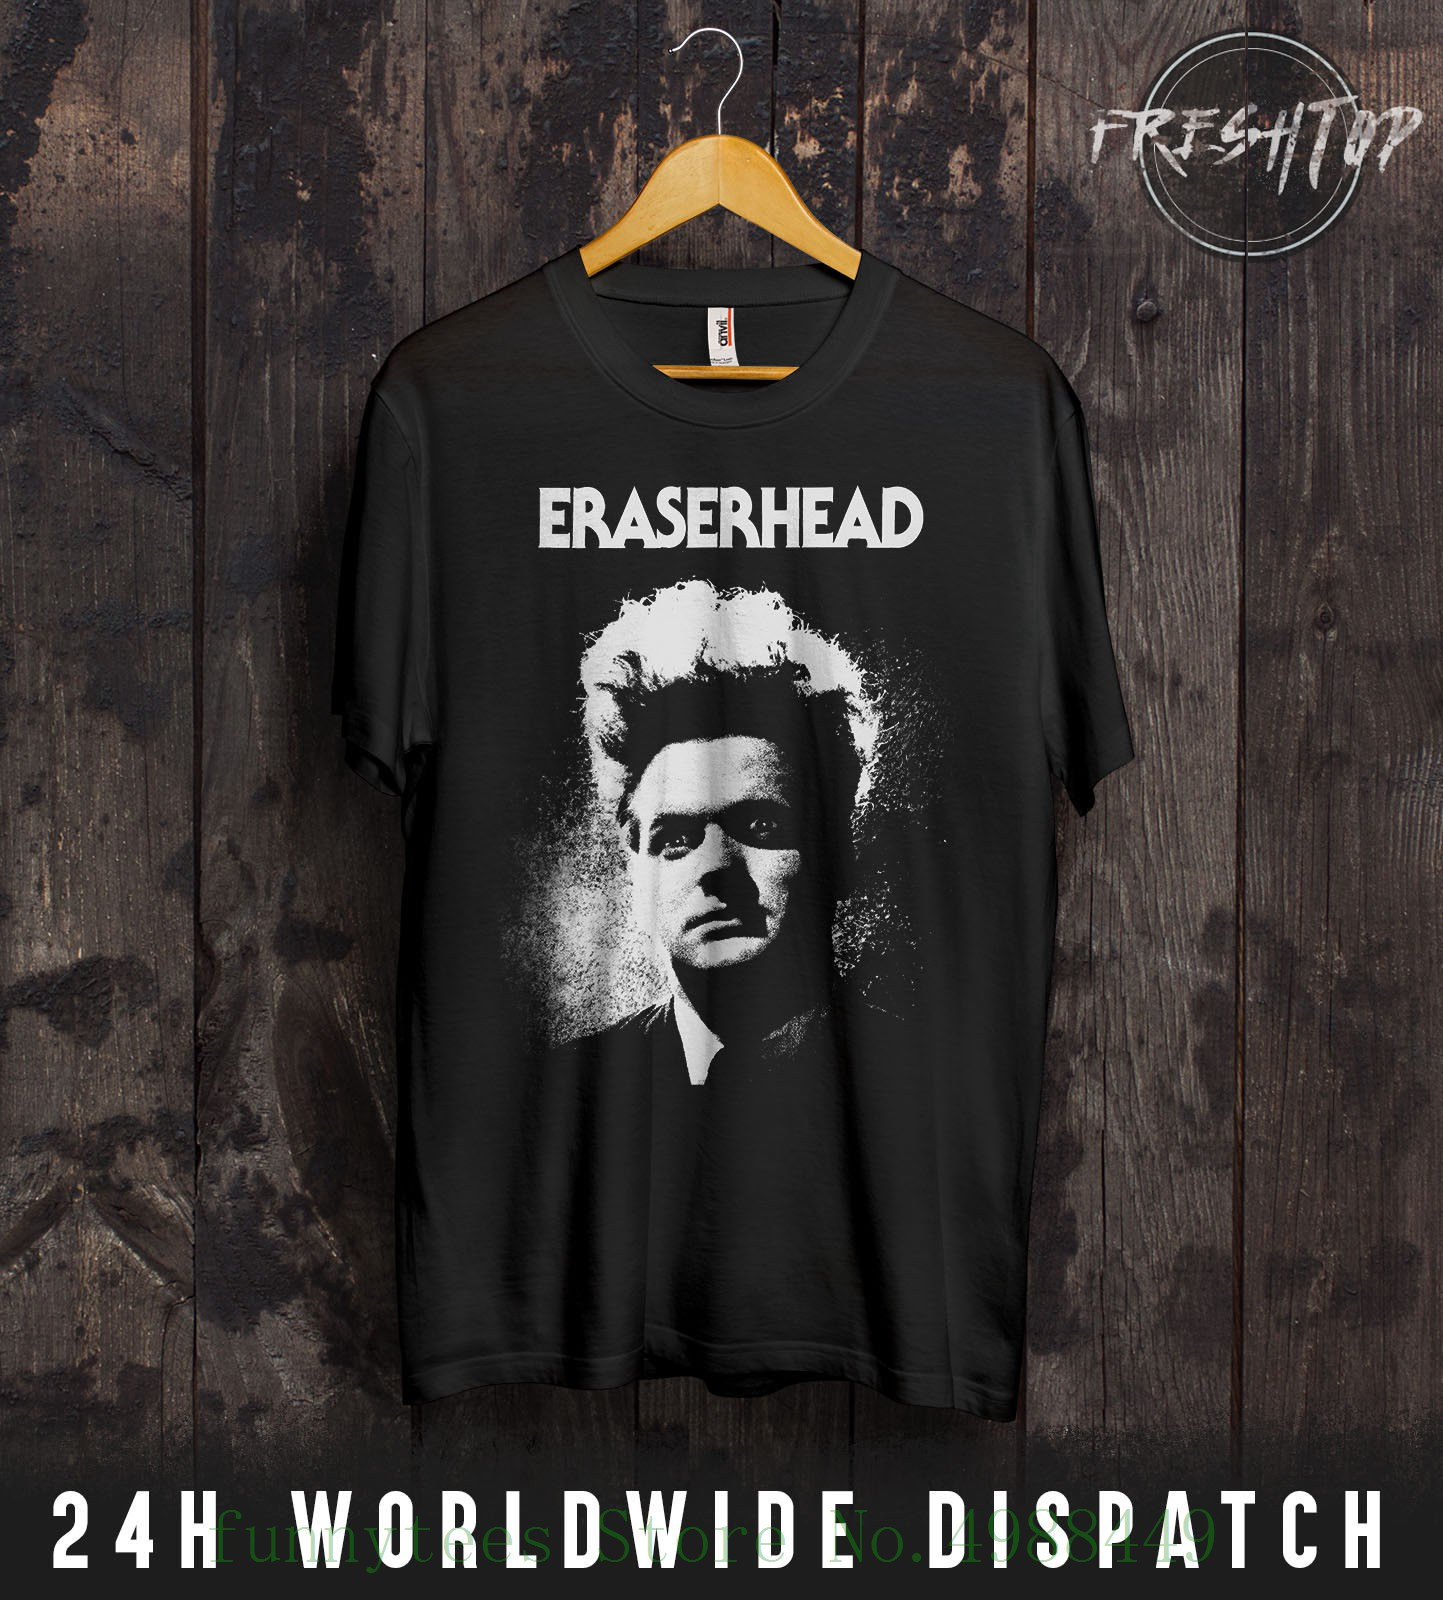 Eraserhead T Shirt David Lynch Cult Horror Movie Twin Peaks Gift S - Xxxl Youth's Short Sleeve Tshirt Cotton image